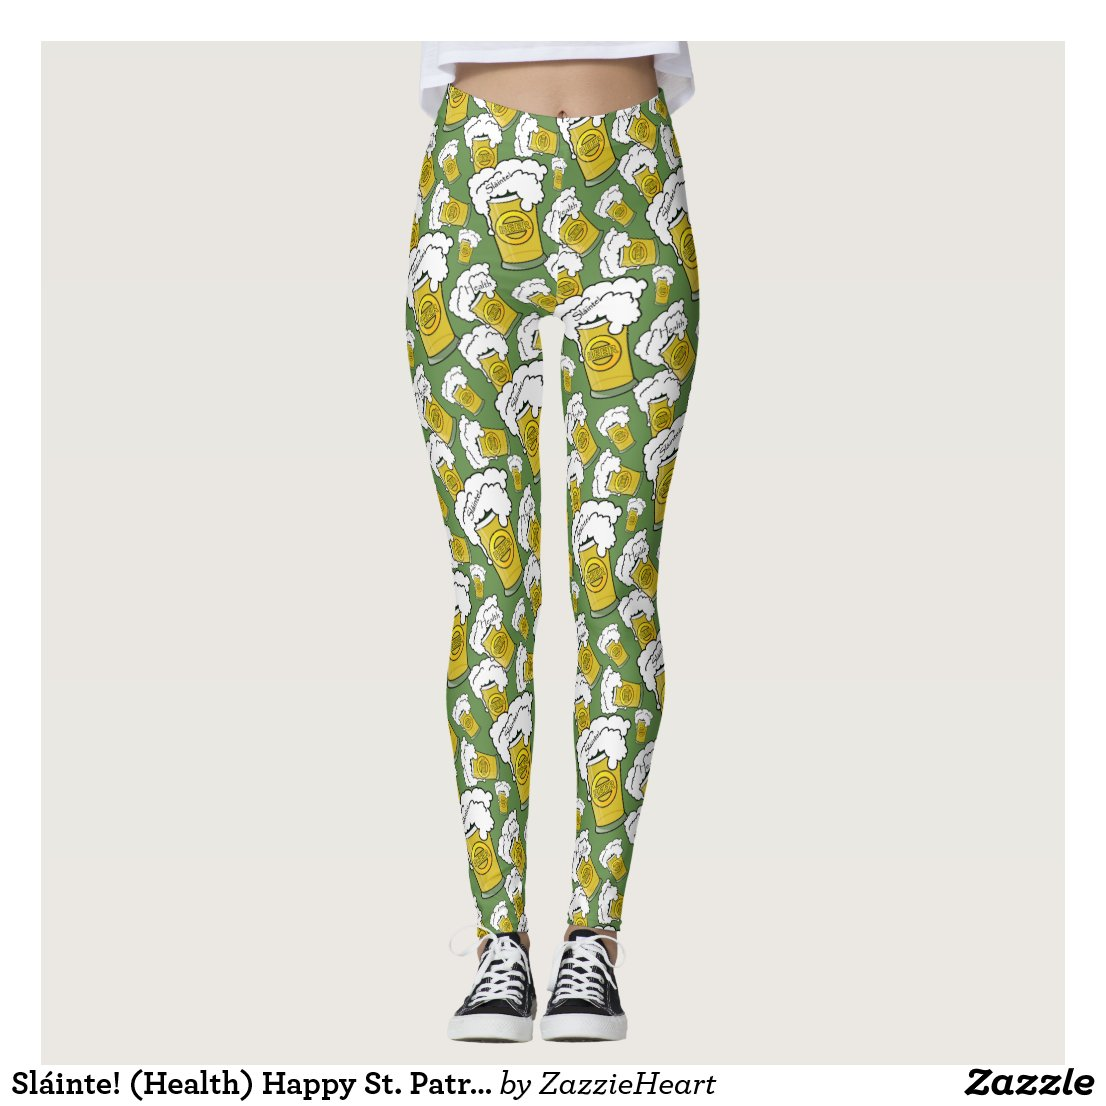 Sláinte! (Health) Happy St. Patrick's Day Leggings